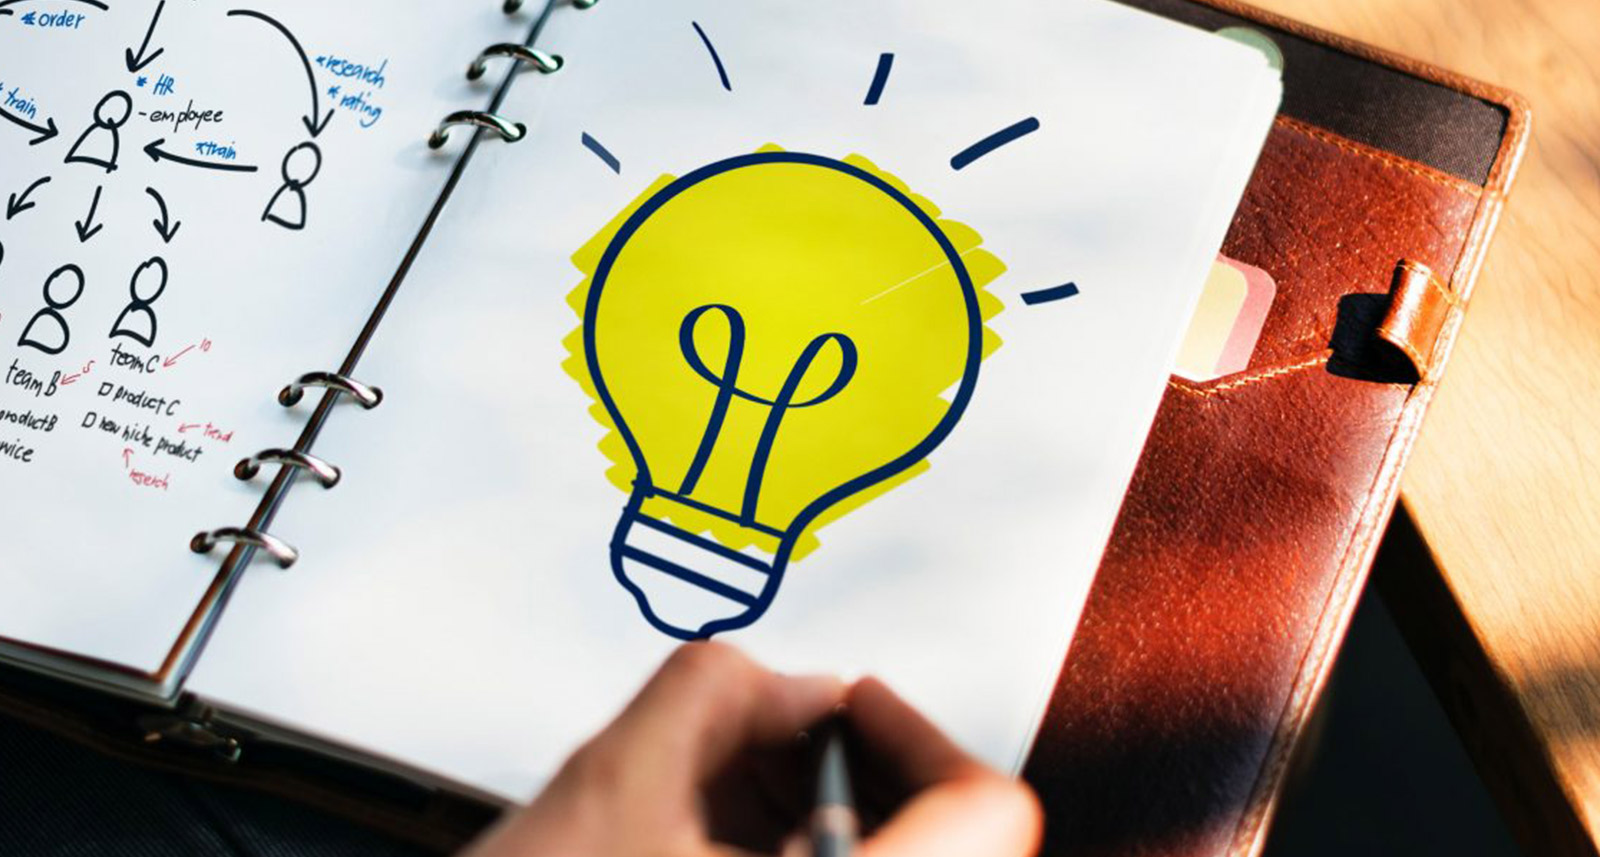 light bulb picture within a notepad